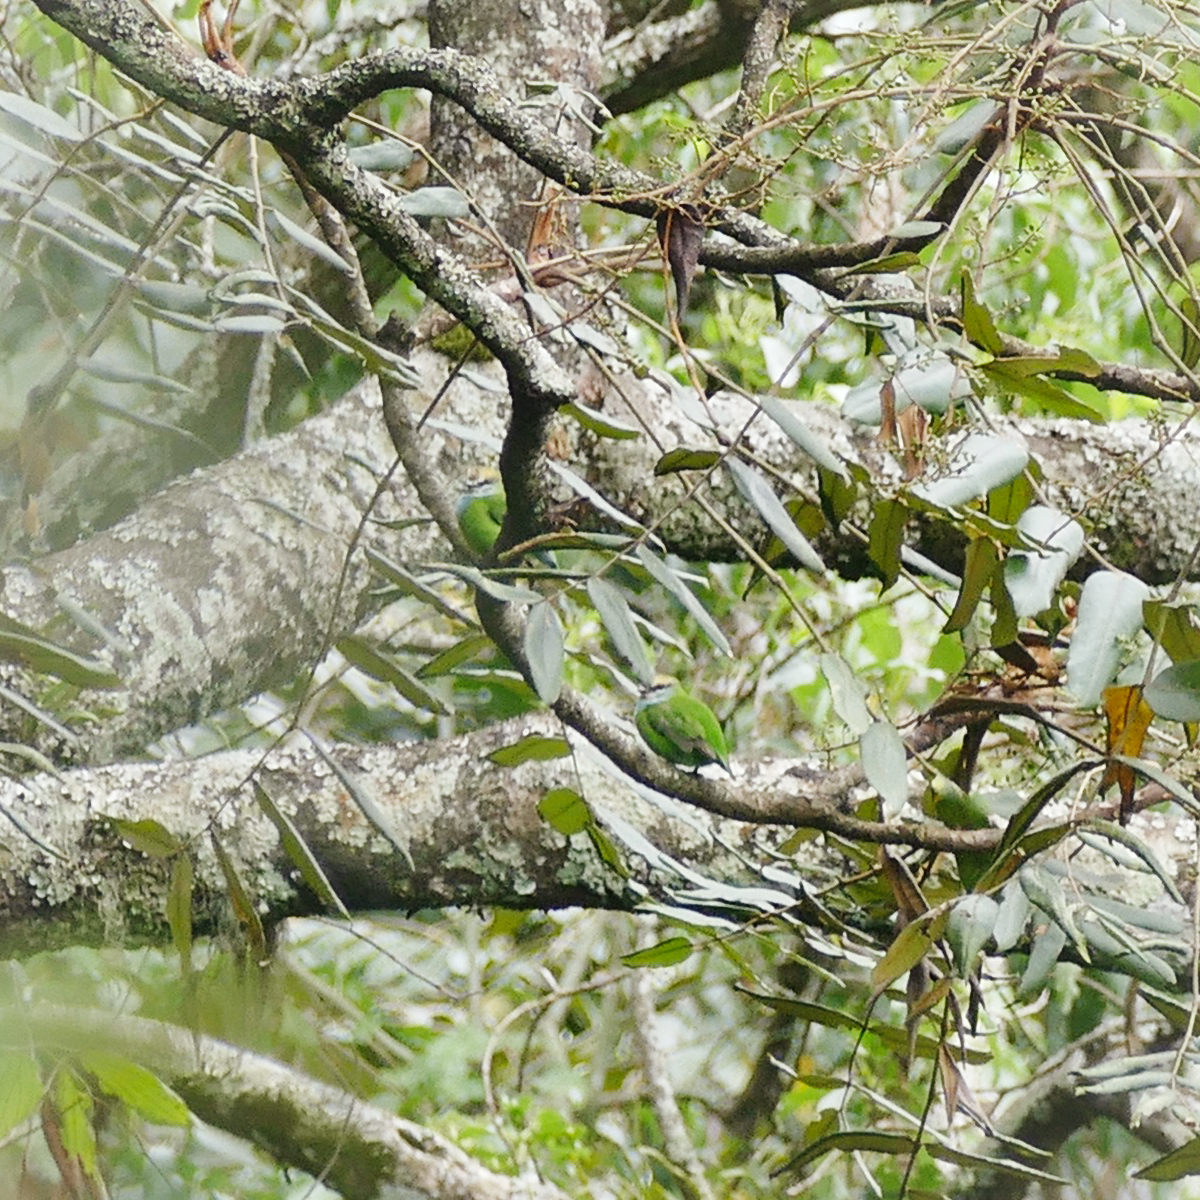 There are two Grauer's Broadbills in this photo - but they blend in amazingly well! Extra credit if you can spot one; consider yourself a professional if you can spot both. Noah Strycker